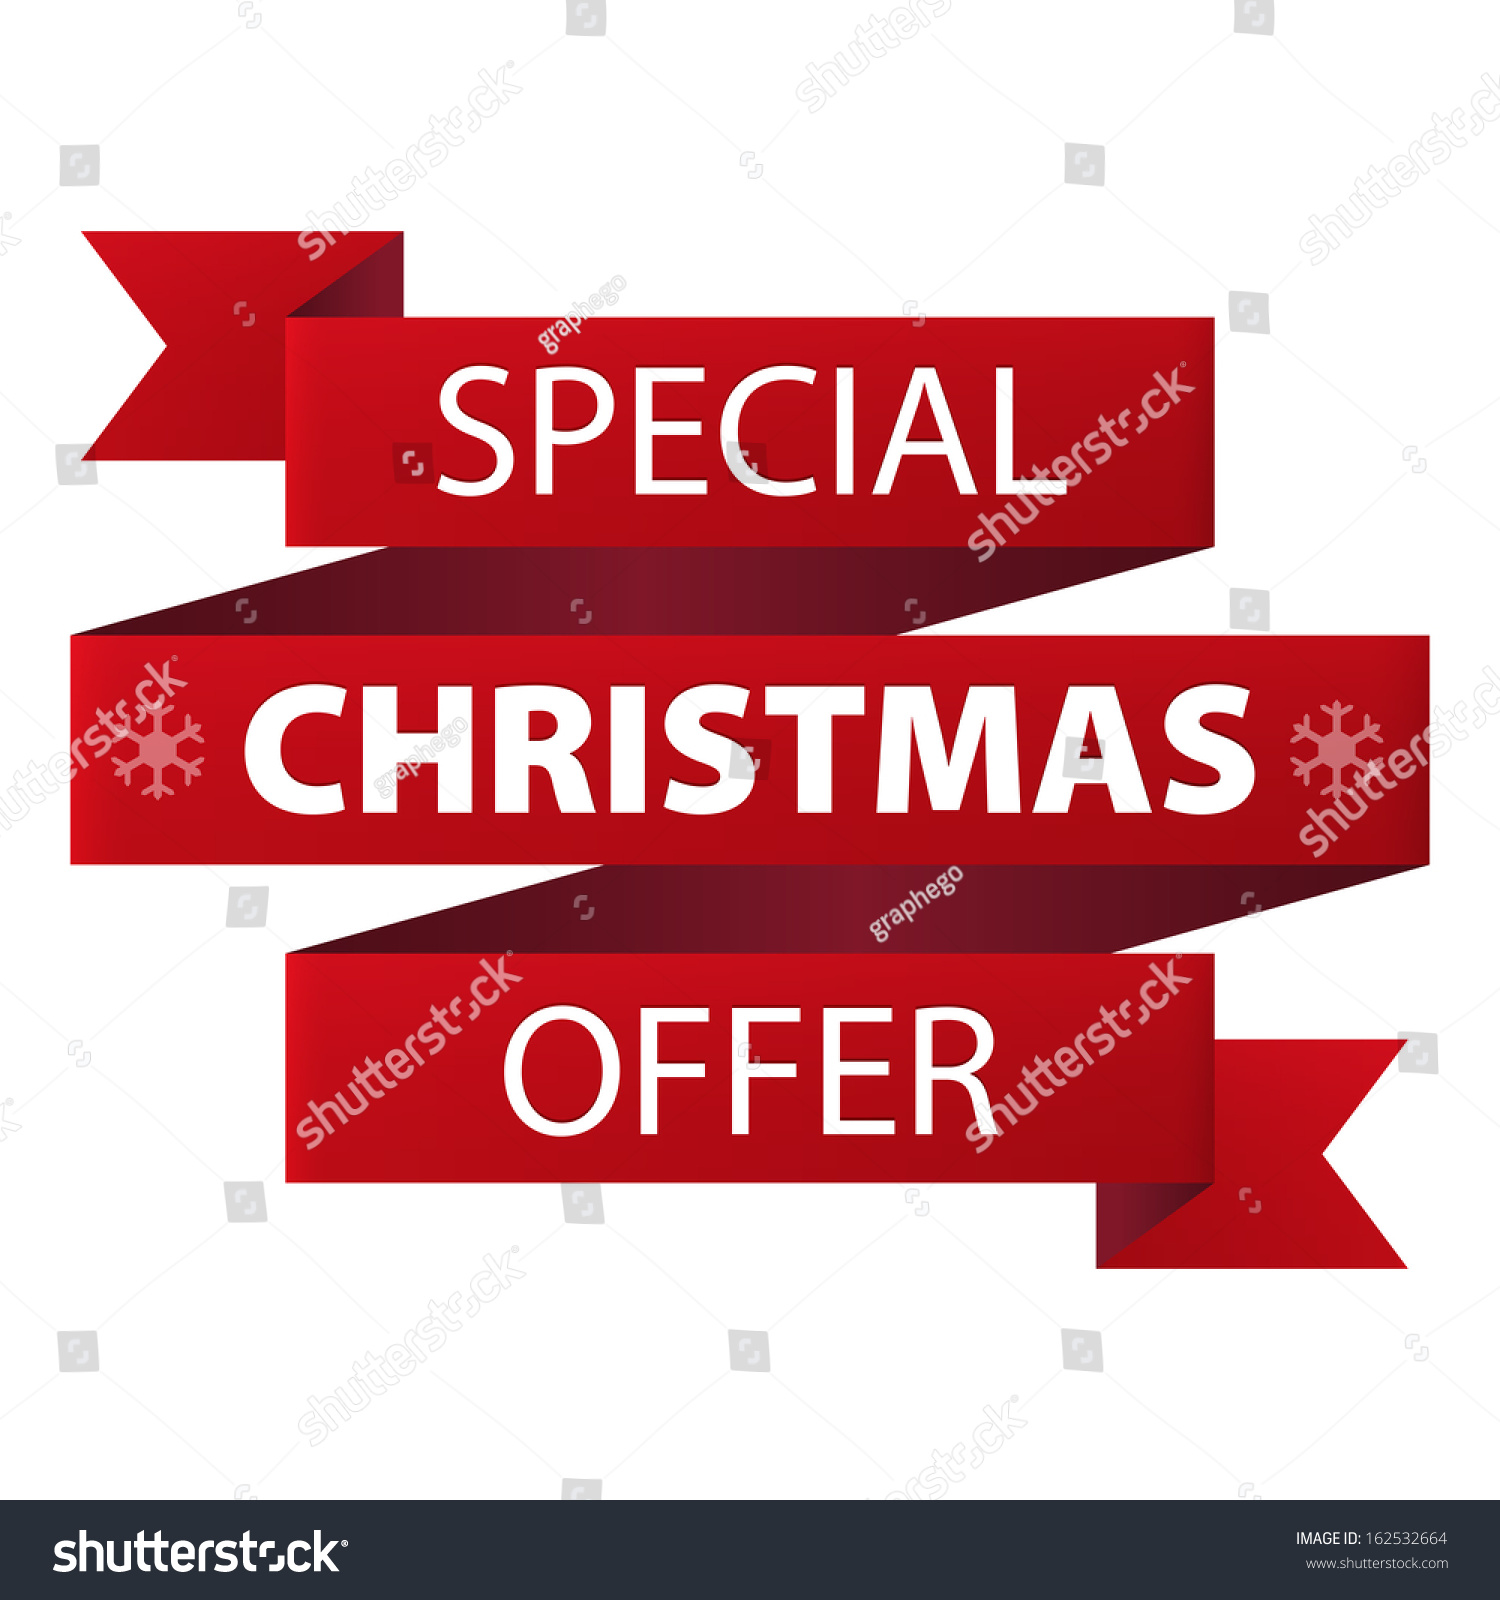 Http Www Shutterstock Com Pic 162532664 Stock Photo Special Christmas Offer Red Ribbon Banner Icon Isolated On White Background Illustration Html